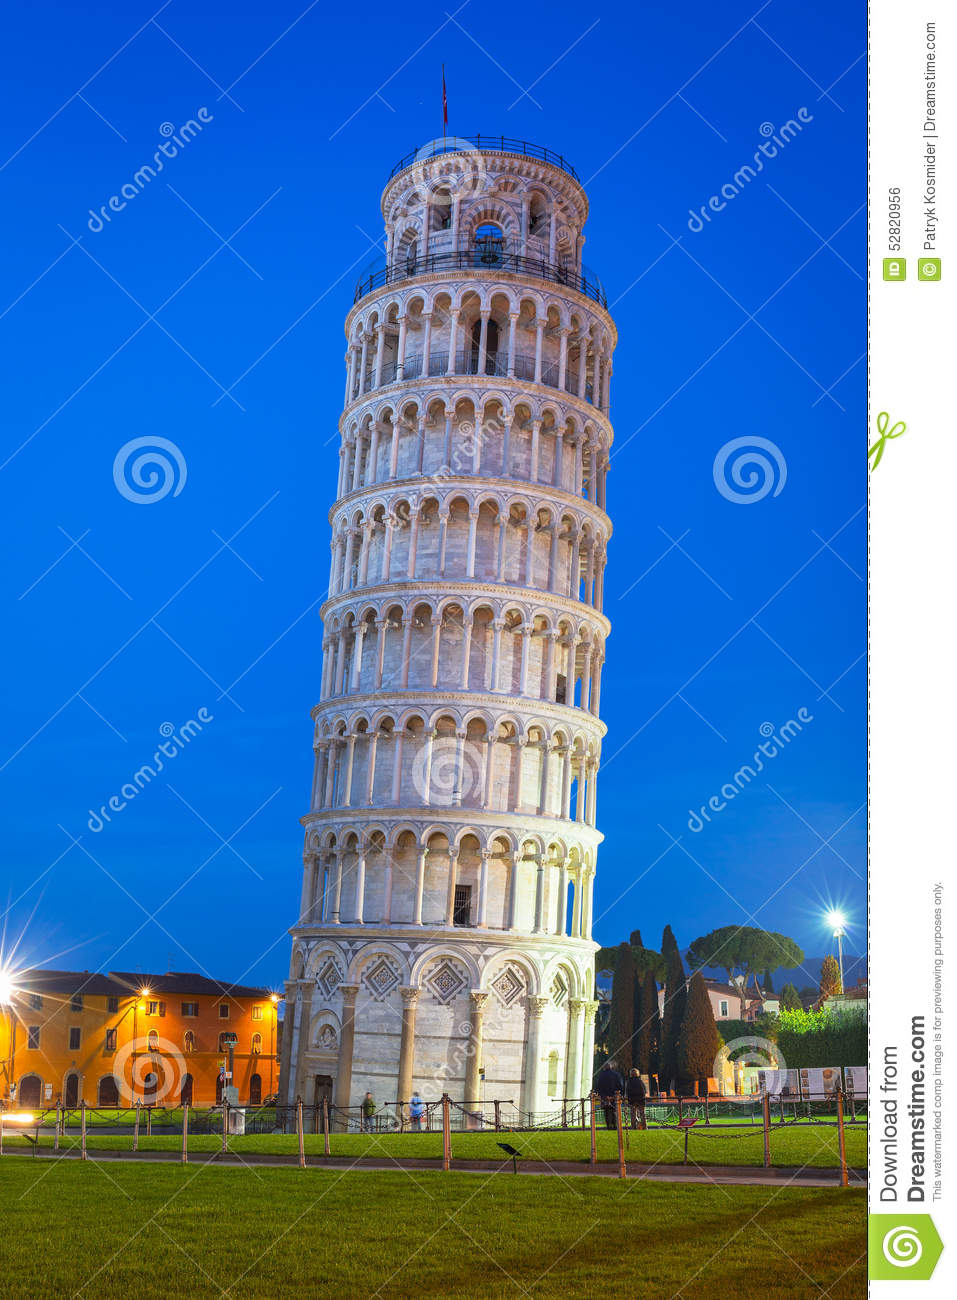 Leaning tower of pisa at night stock photo image 52820956 - Lego architecture tour de pise ...